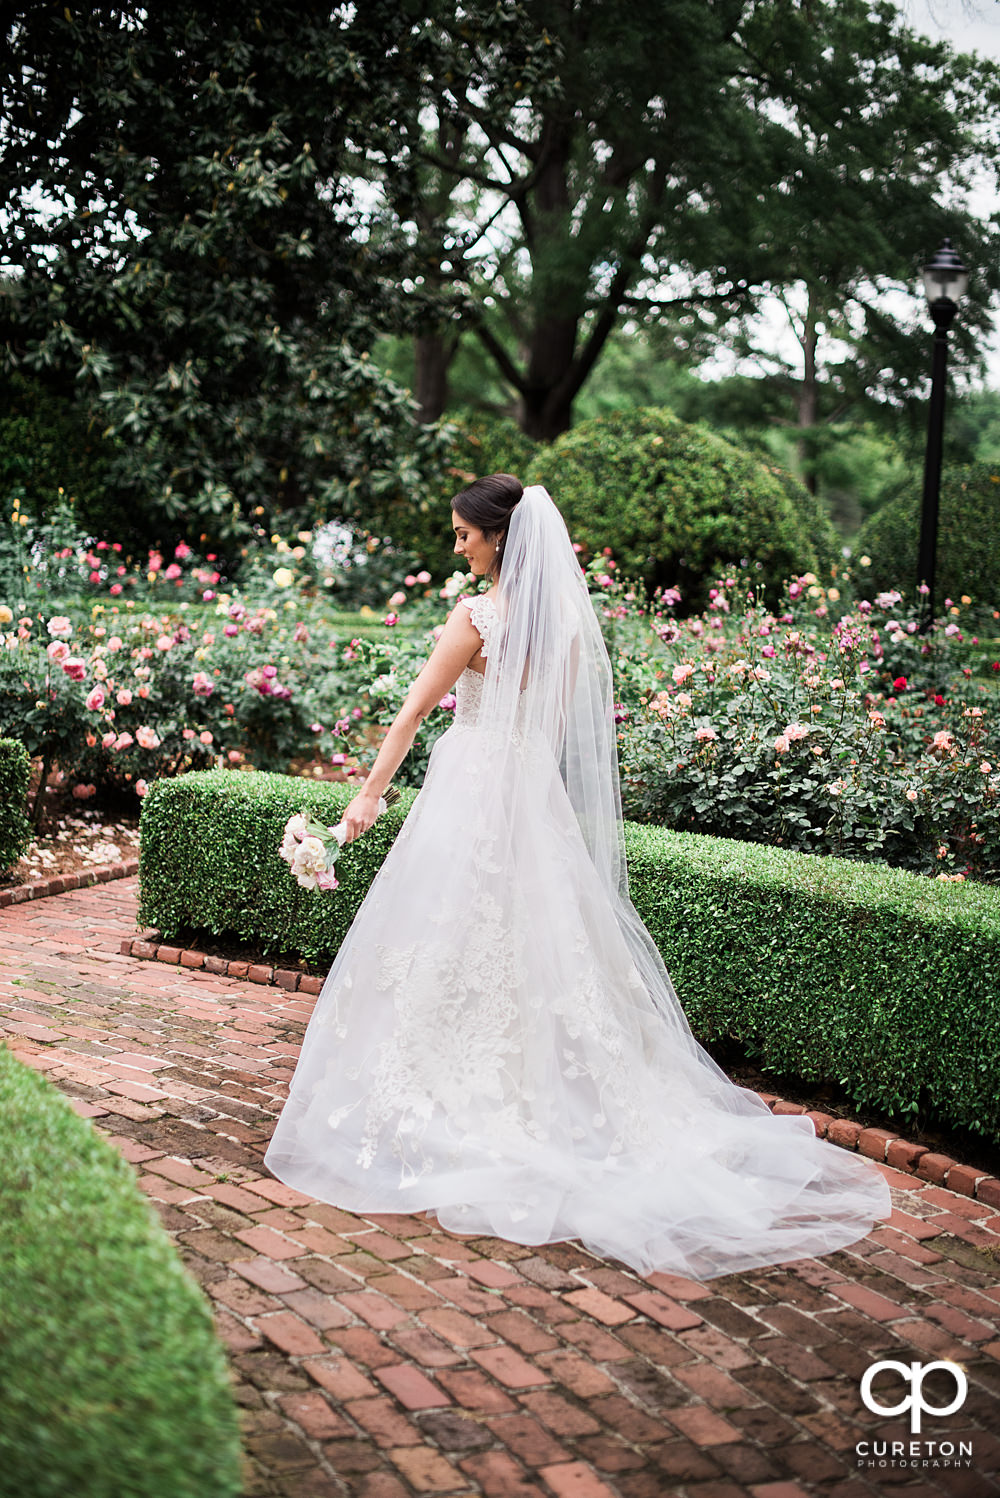 The back of the bride's dress.